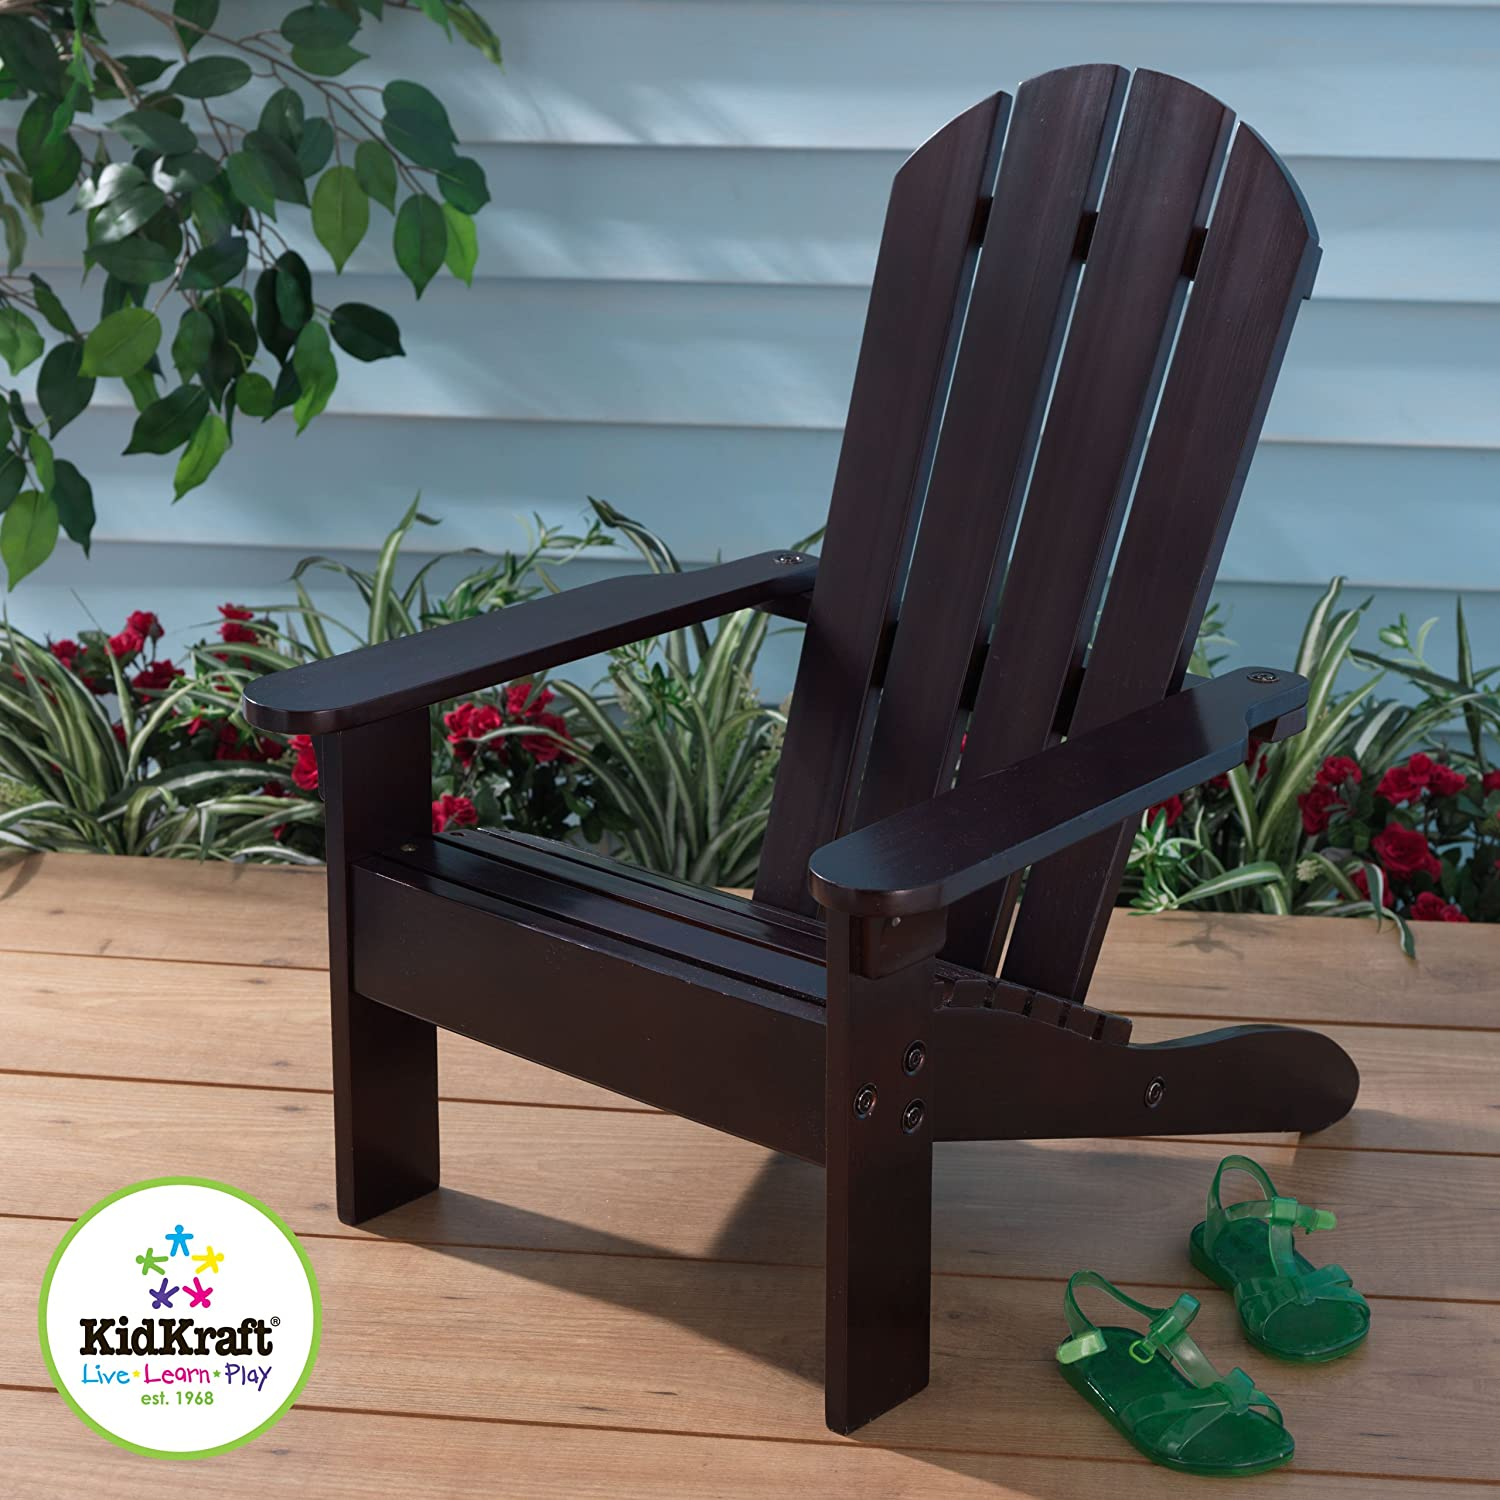 Amazon KidKraft Adirondack Chair Espresso Toys & Games